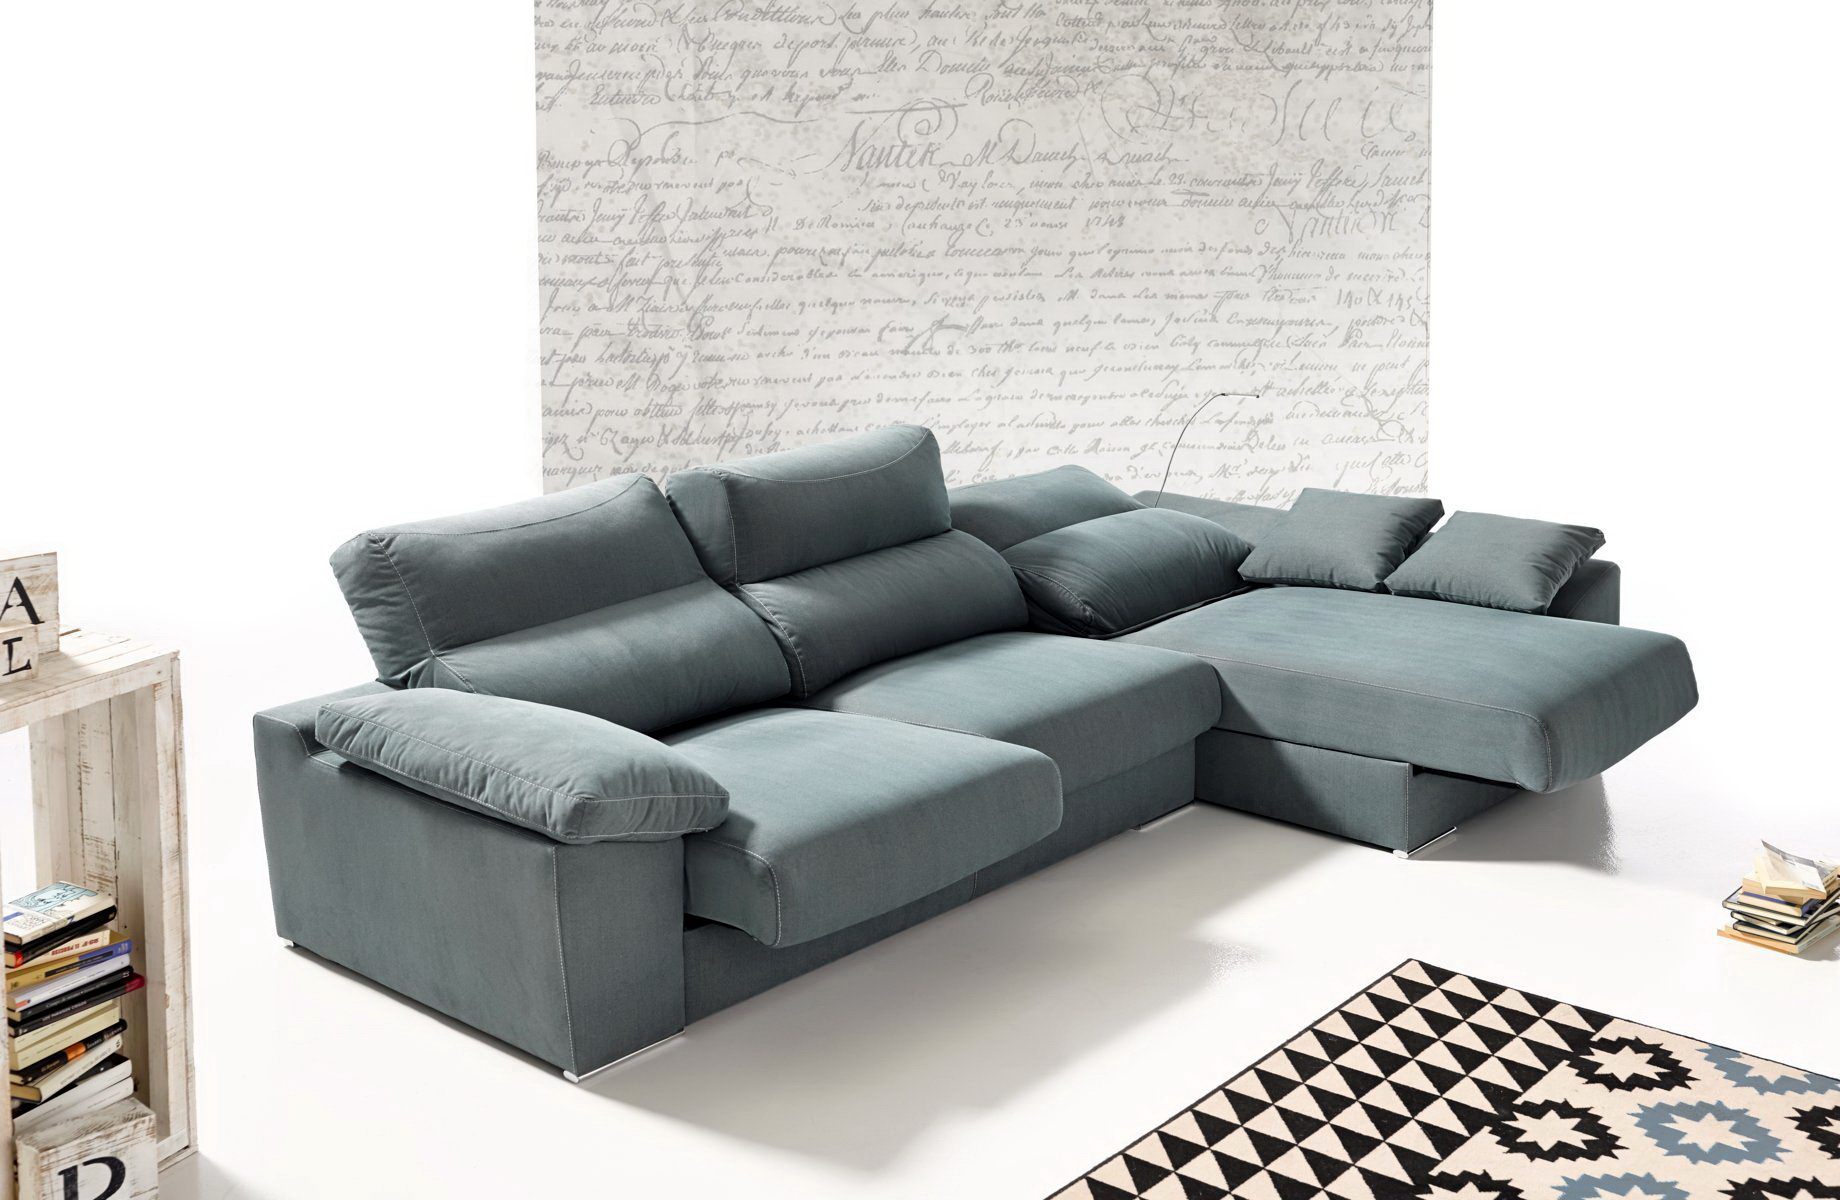 Akua sof chaise longue modular by future design confort for Sofa 1 plaza chaise longue